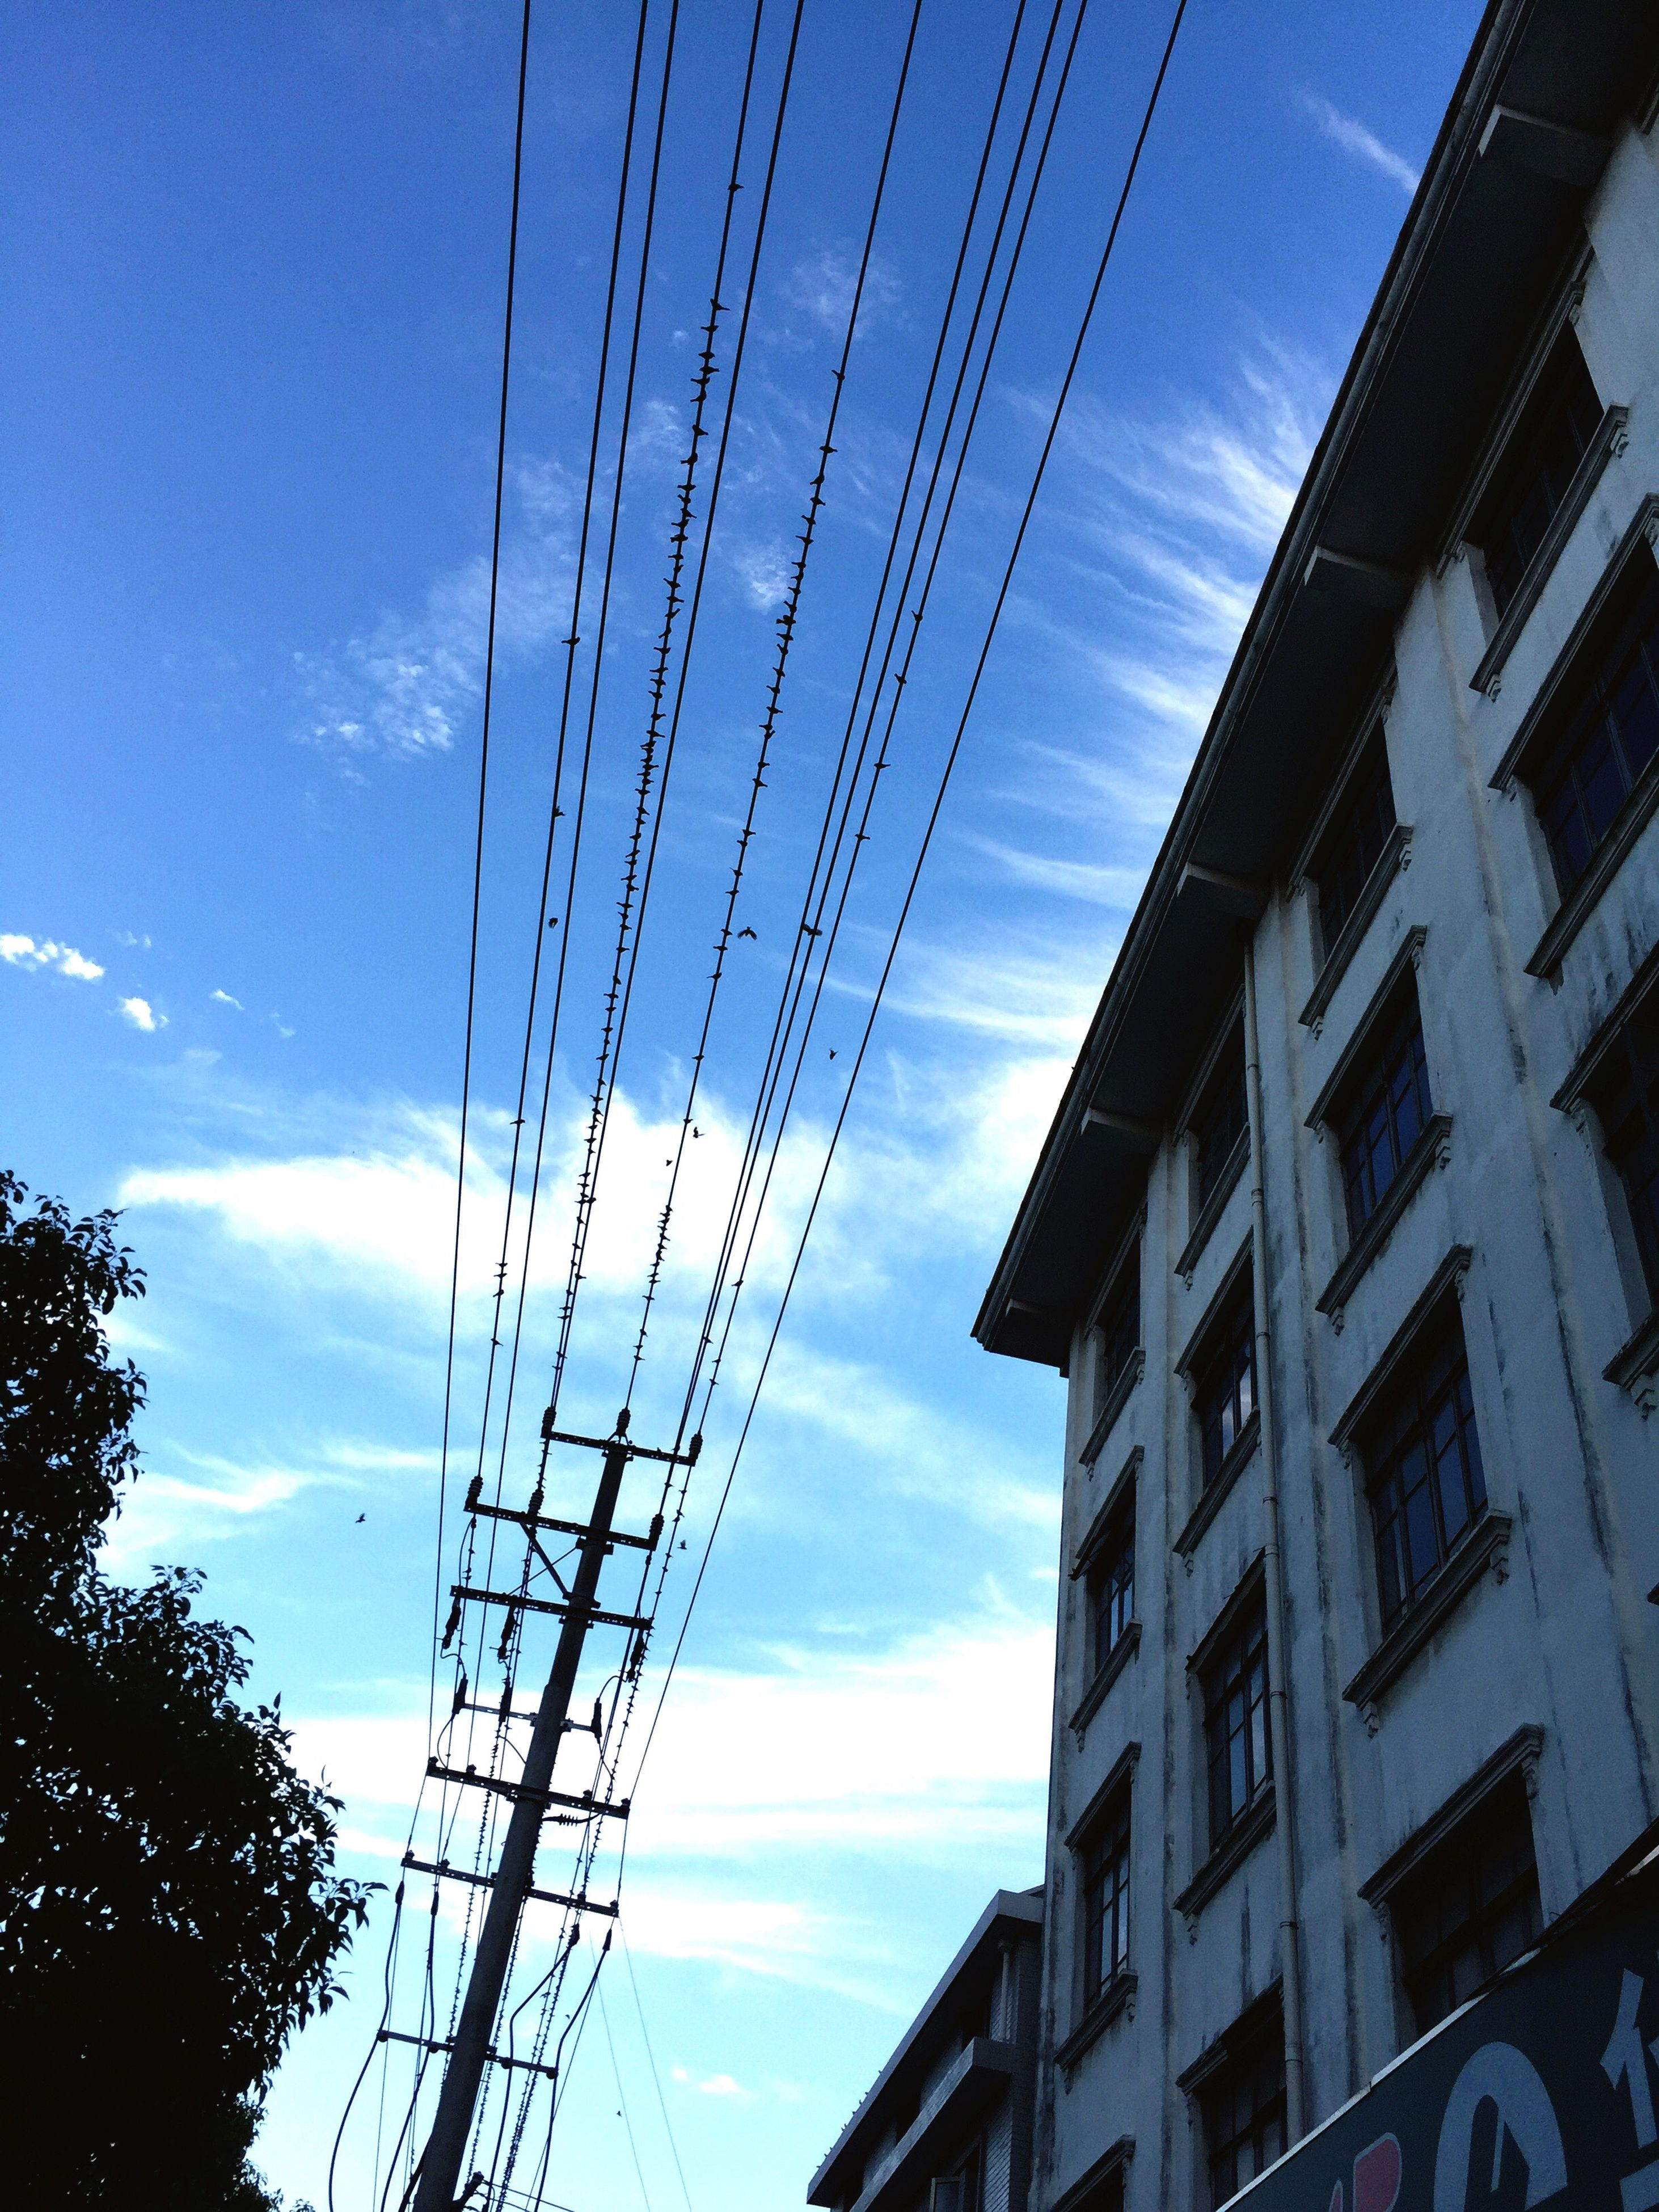 architecture, built structure, building exterior, low angle view, electricity, sky, power line, connection, cable, city, power supply, electricity pylon, tall - high, tower, cloud, blue, day, outdoors, cloud - sky, city life, office building, skyscraper, no people, modern, development